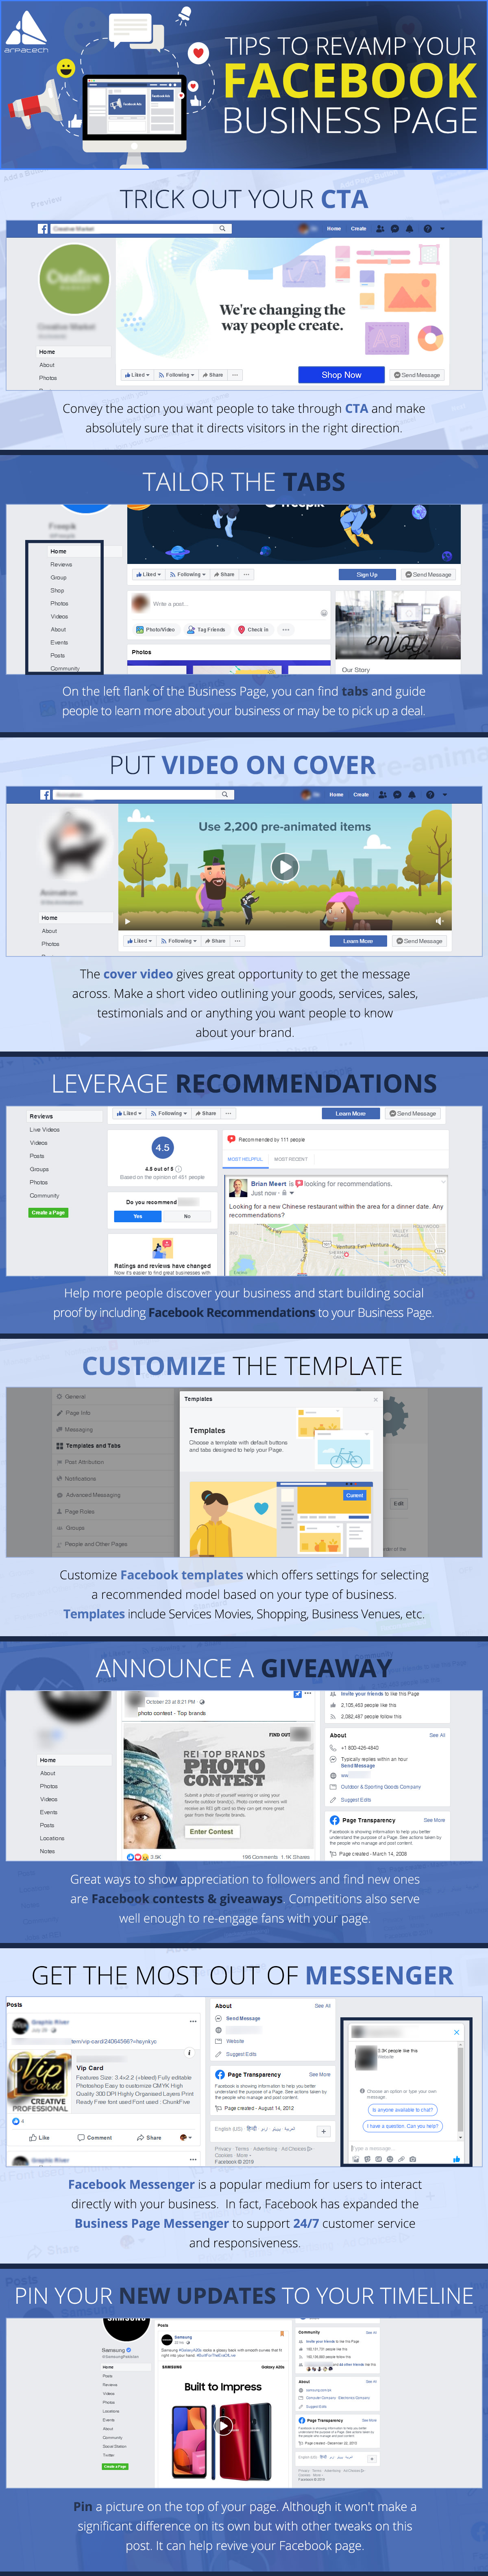 facebook-business-page-infographics